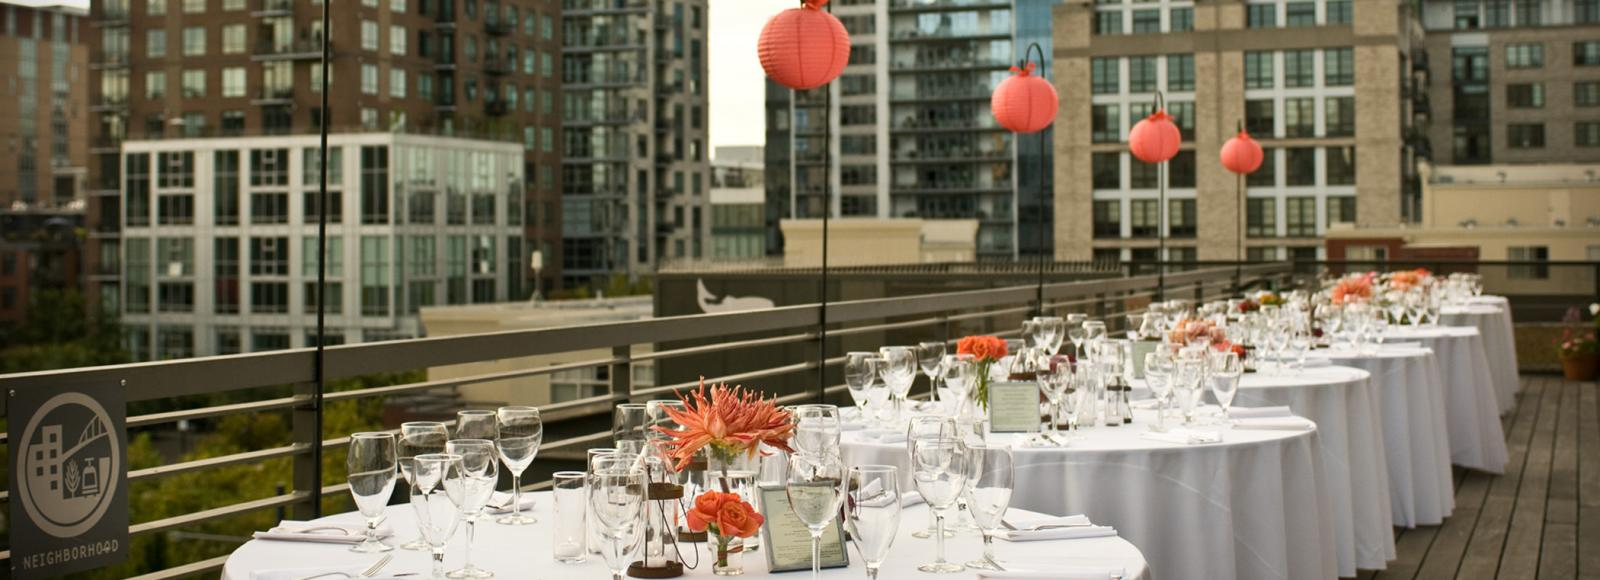 Tables are set for a banquet on the Ecotrust rooftop terrace. White Linens. Wine glasses. Red-orange flowers that match globe paper lanterns. City skyline in the background.